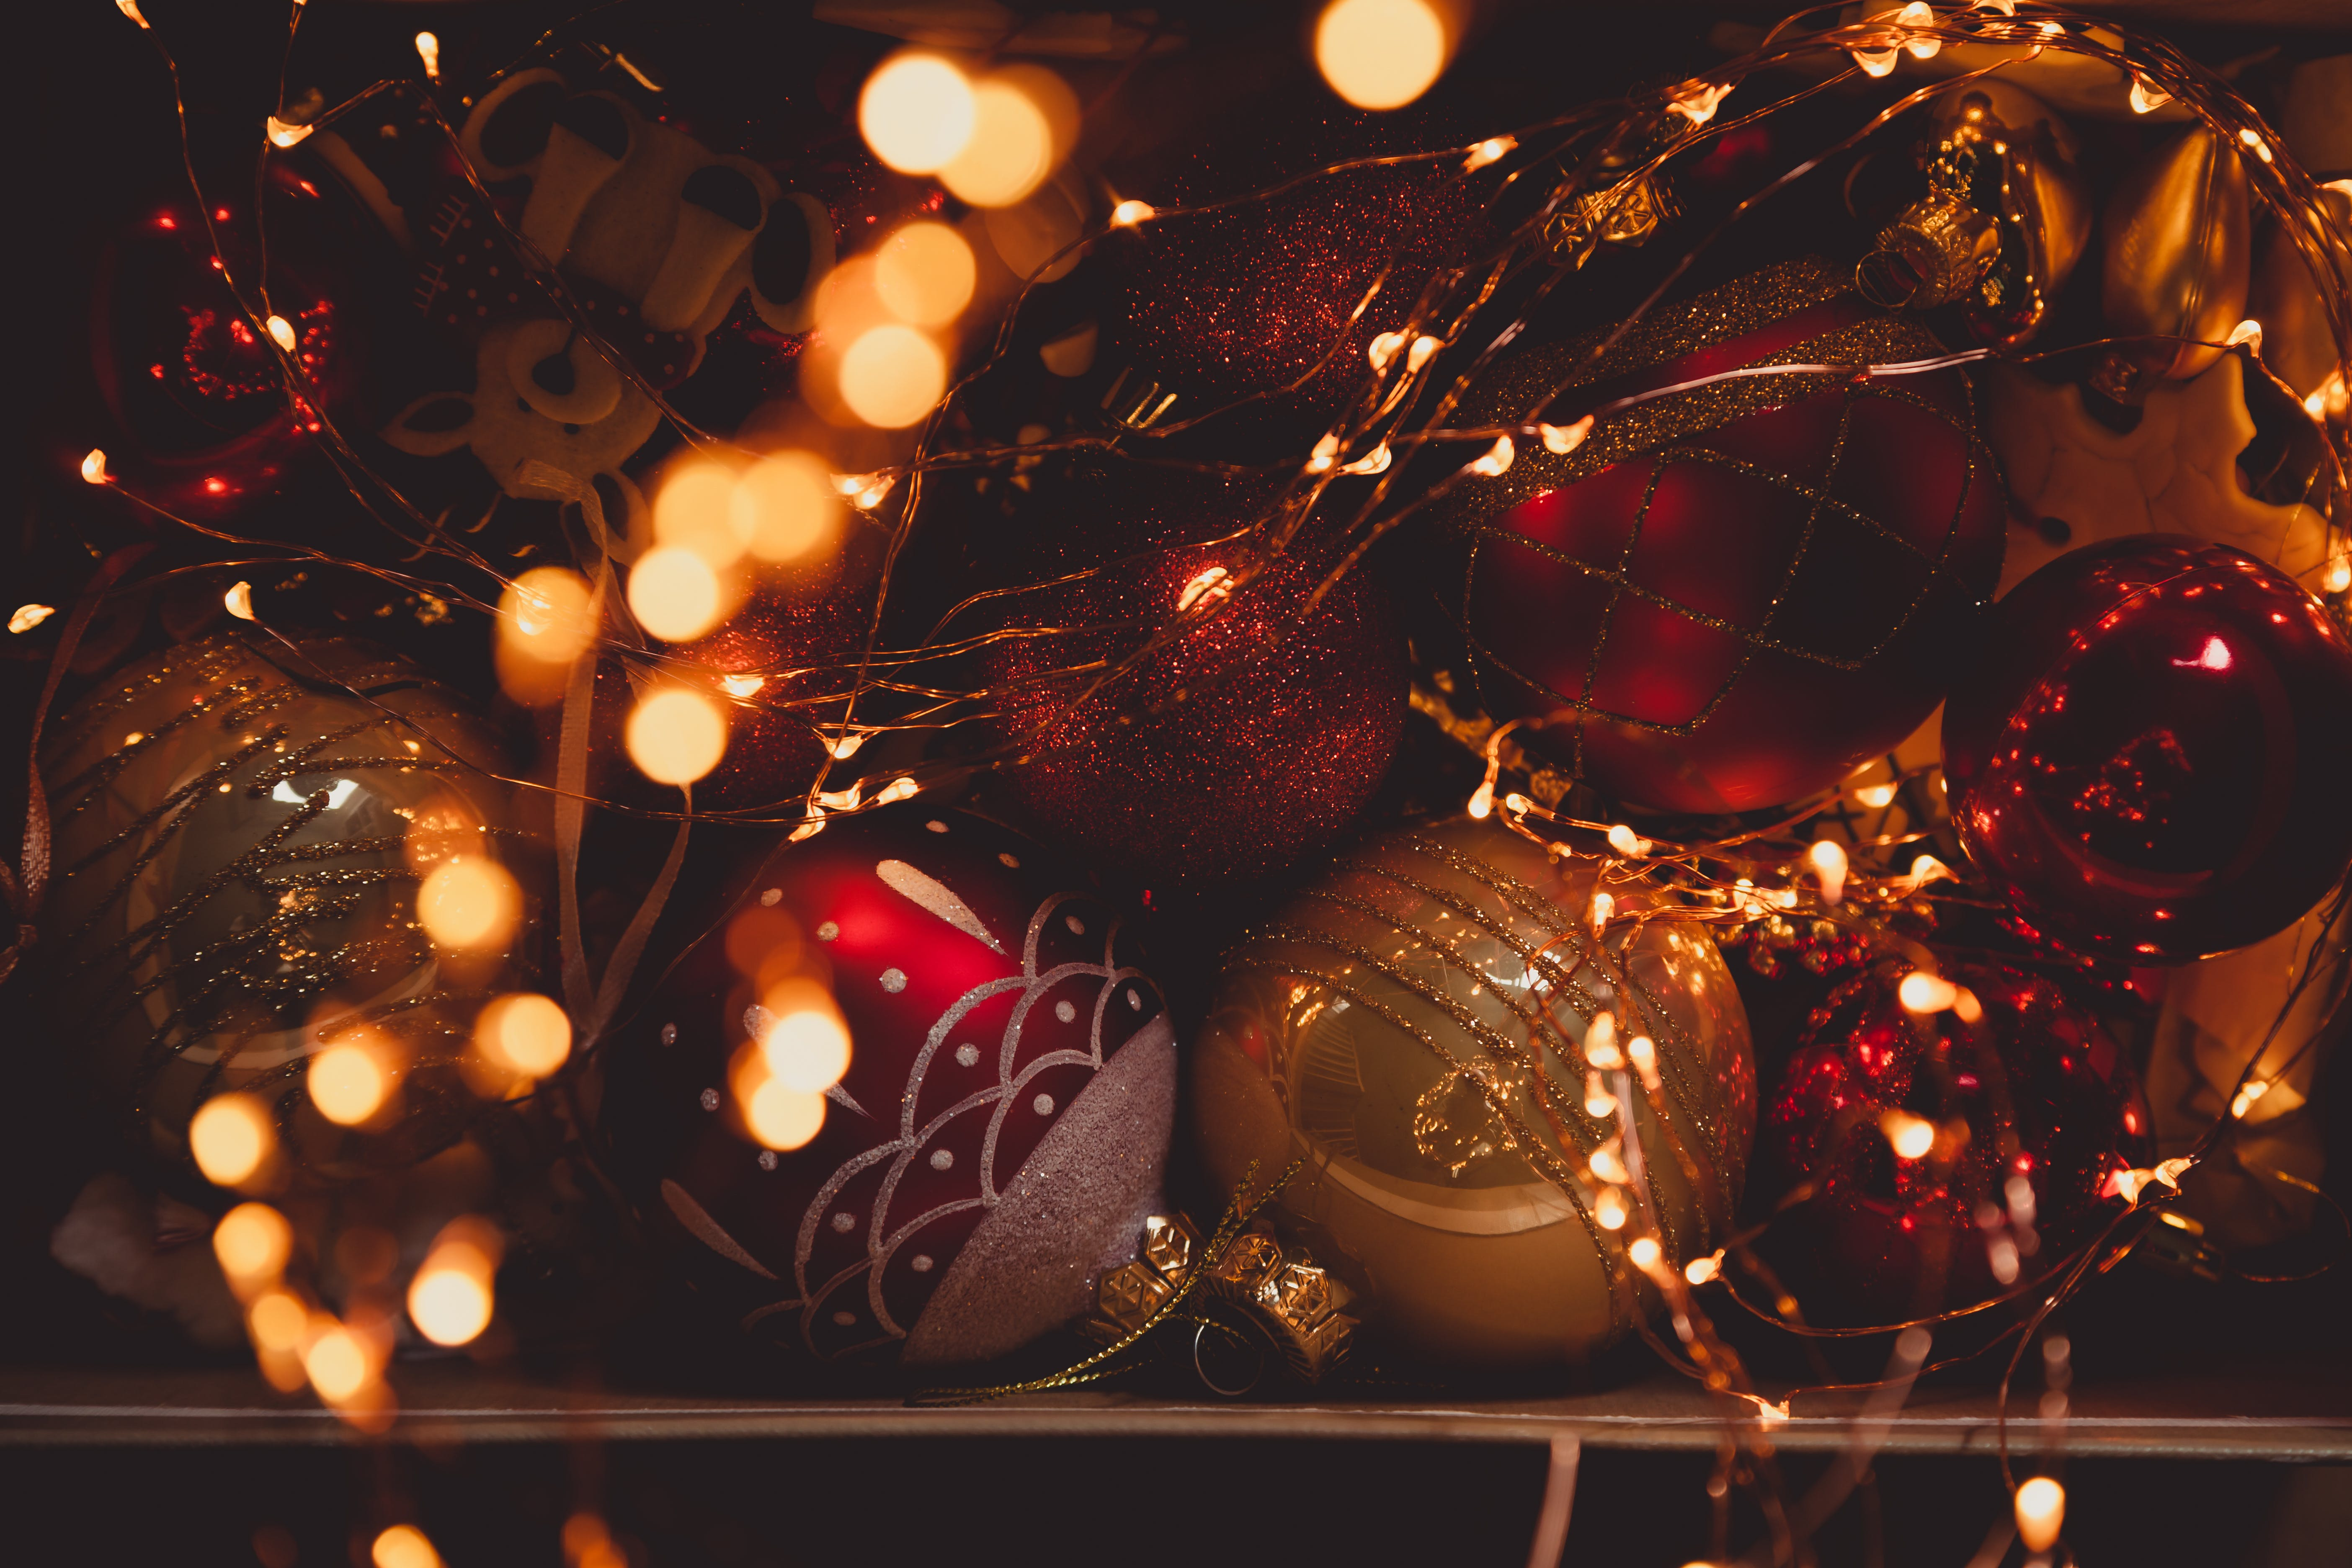 Selective Focus Photo of Baubles and Christmas Lights